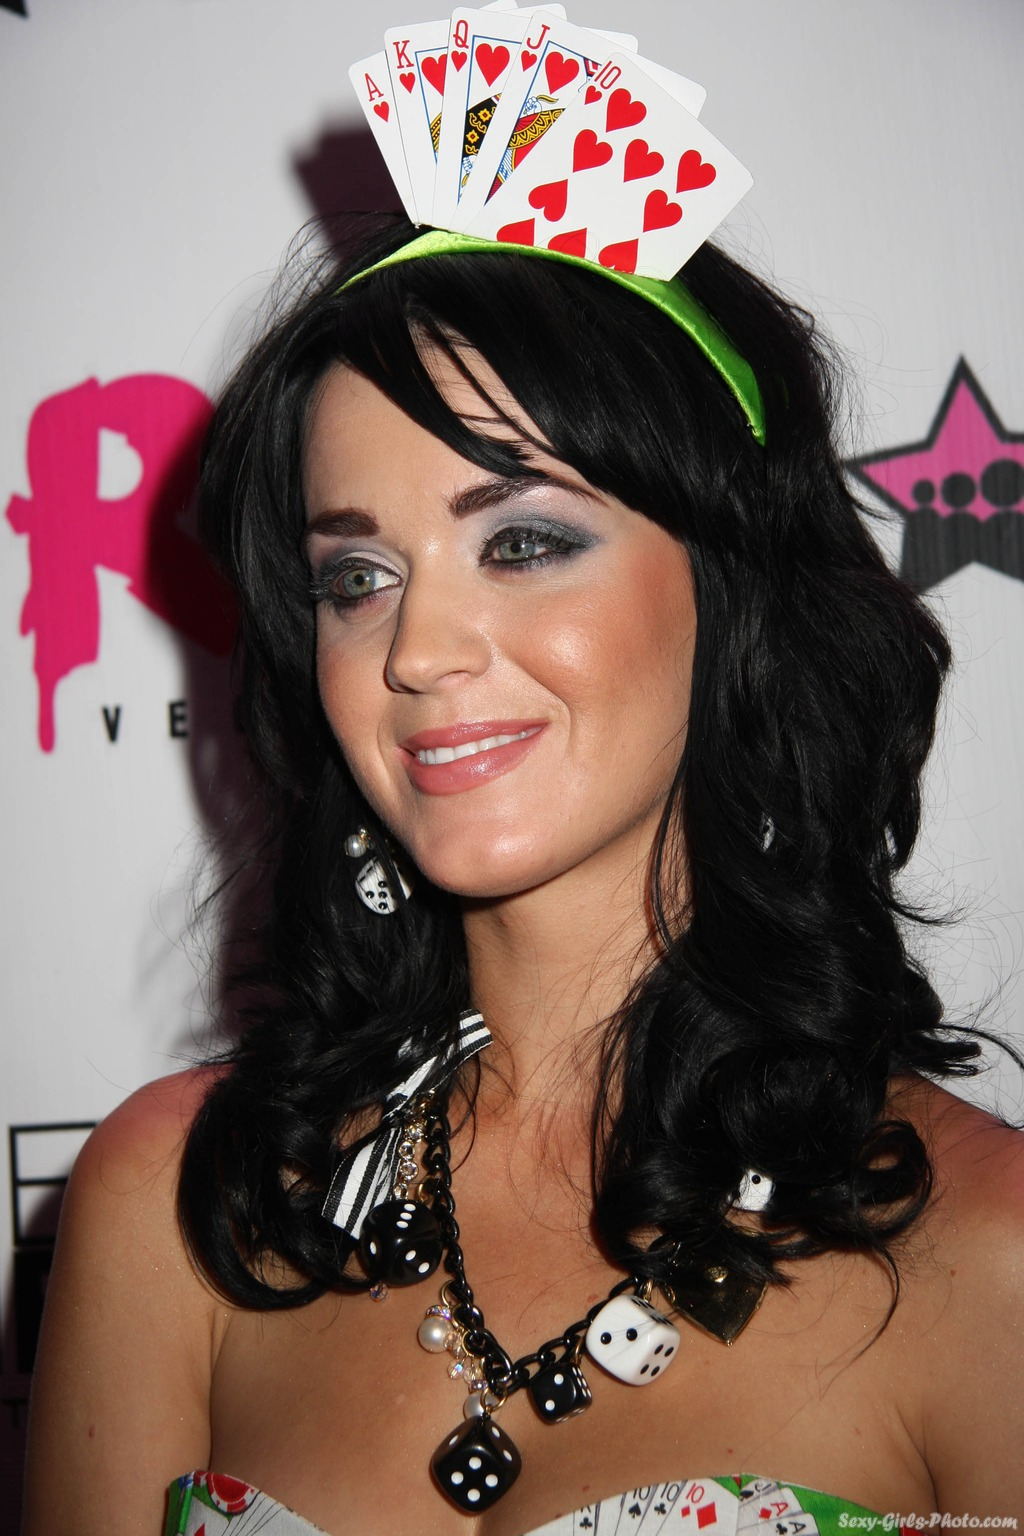 Katy Perry photo #78865